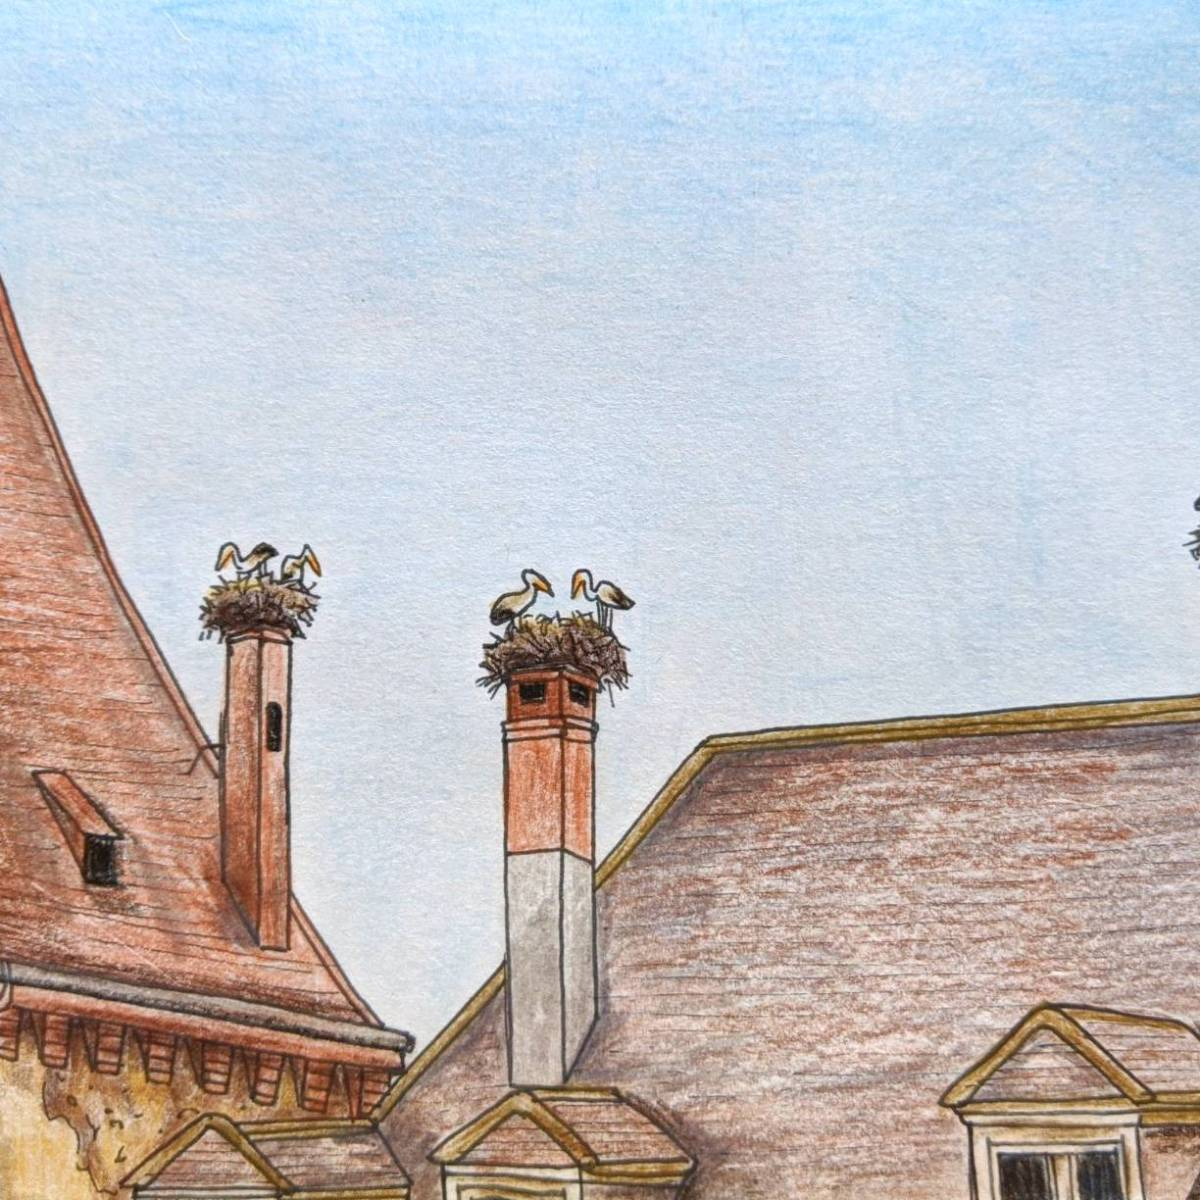 Sketch of stork nests on chimney platforms in northern France alsace region